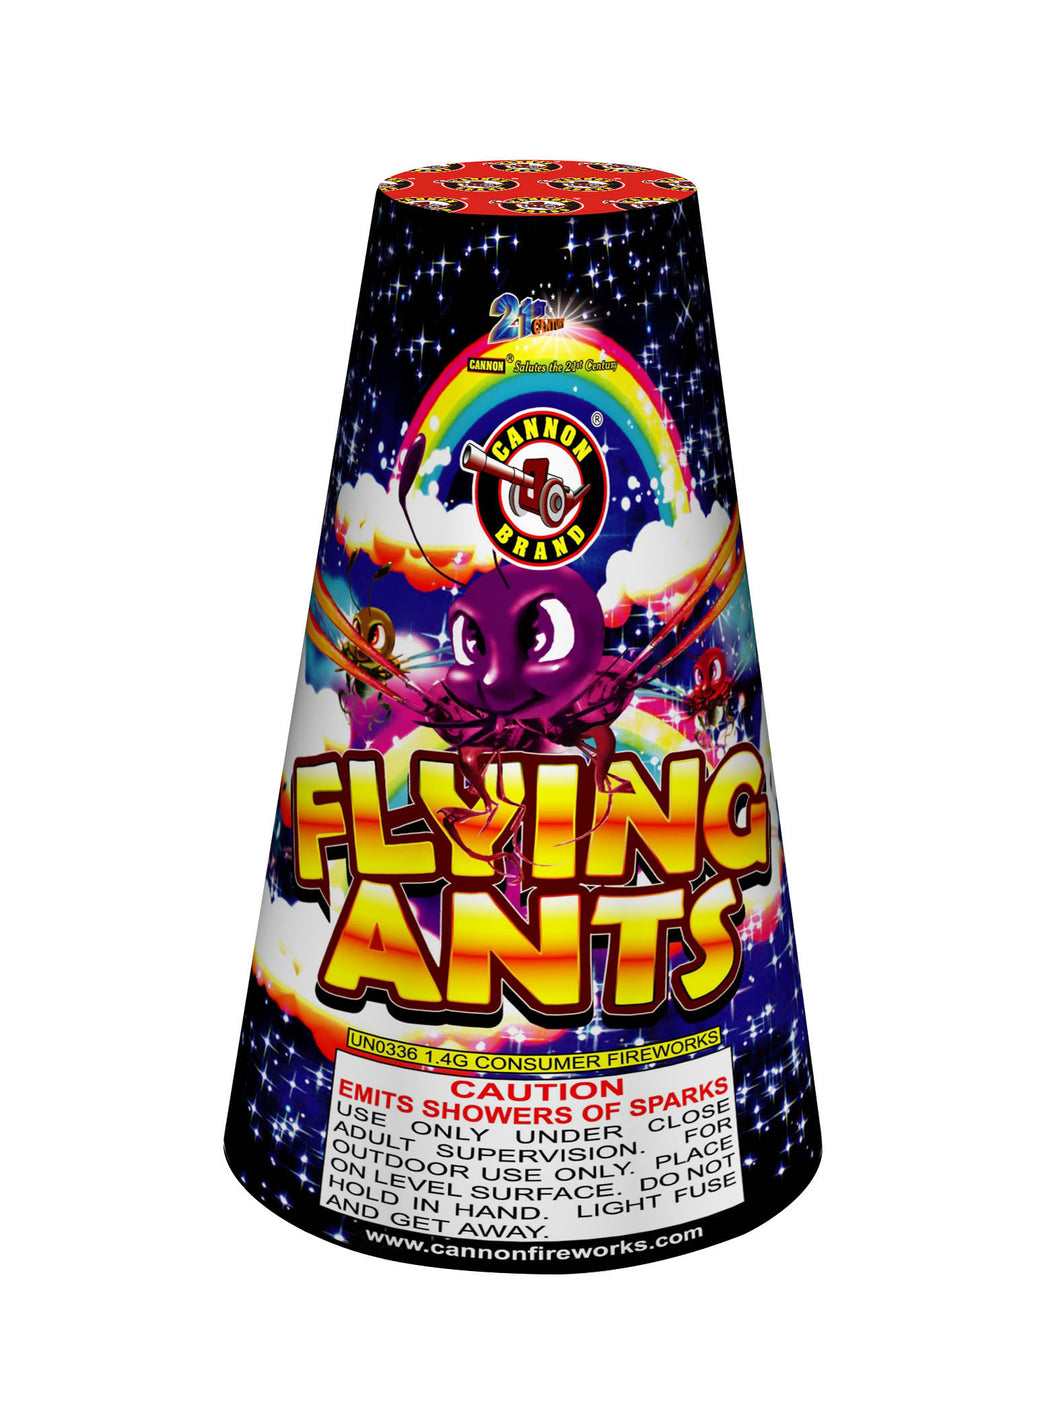 Flying Ants - Cannon Fireworks